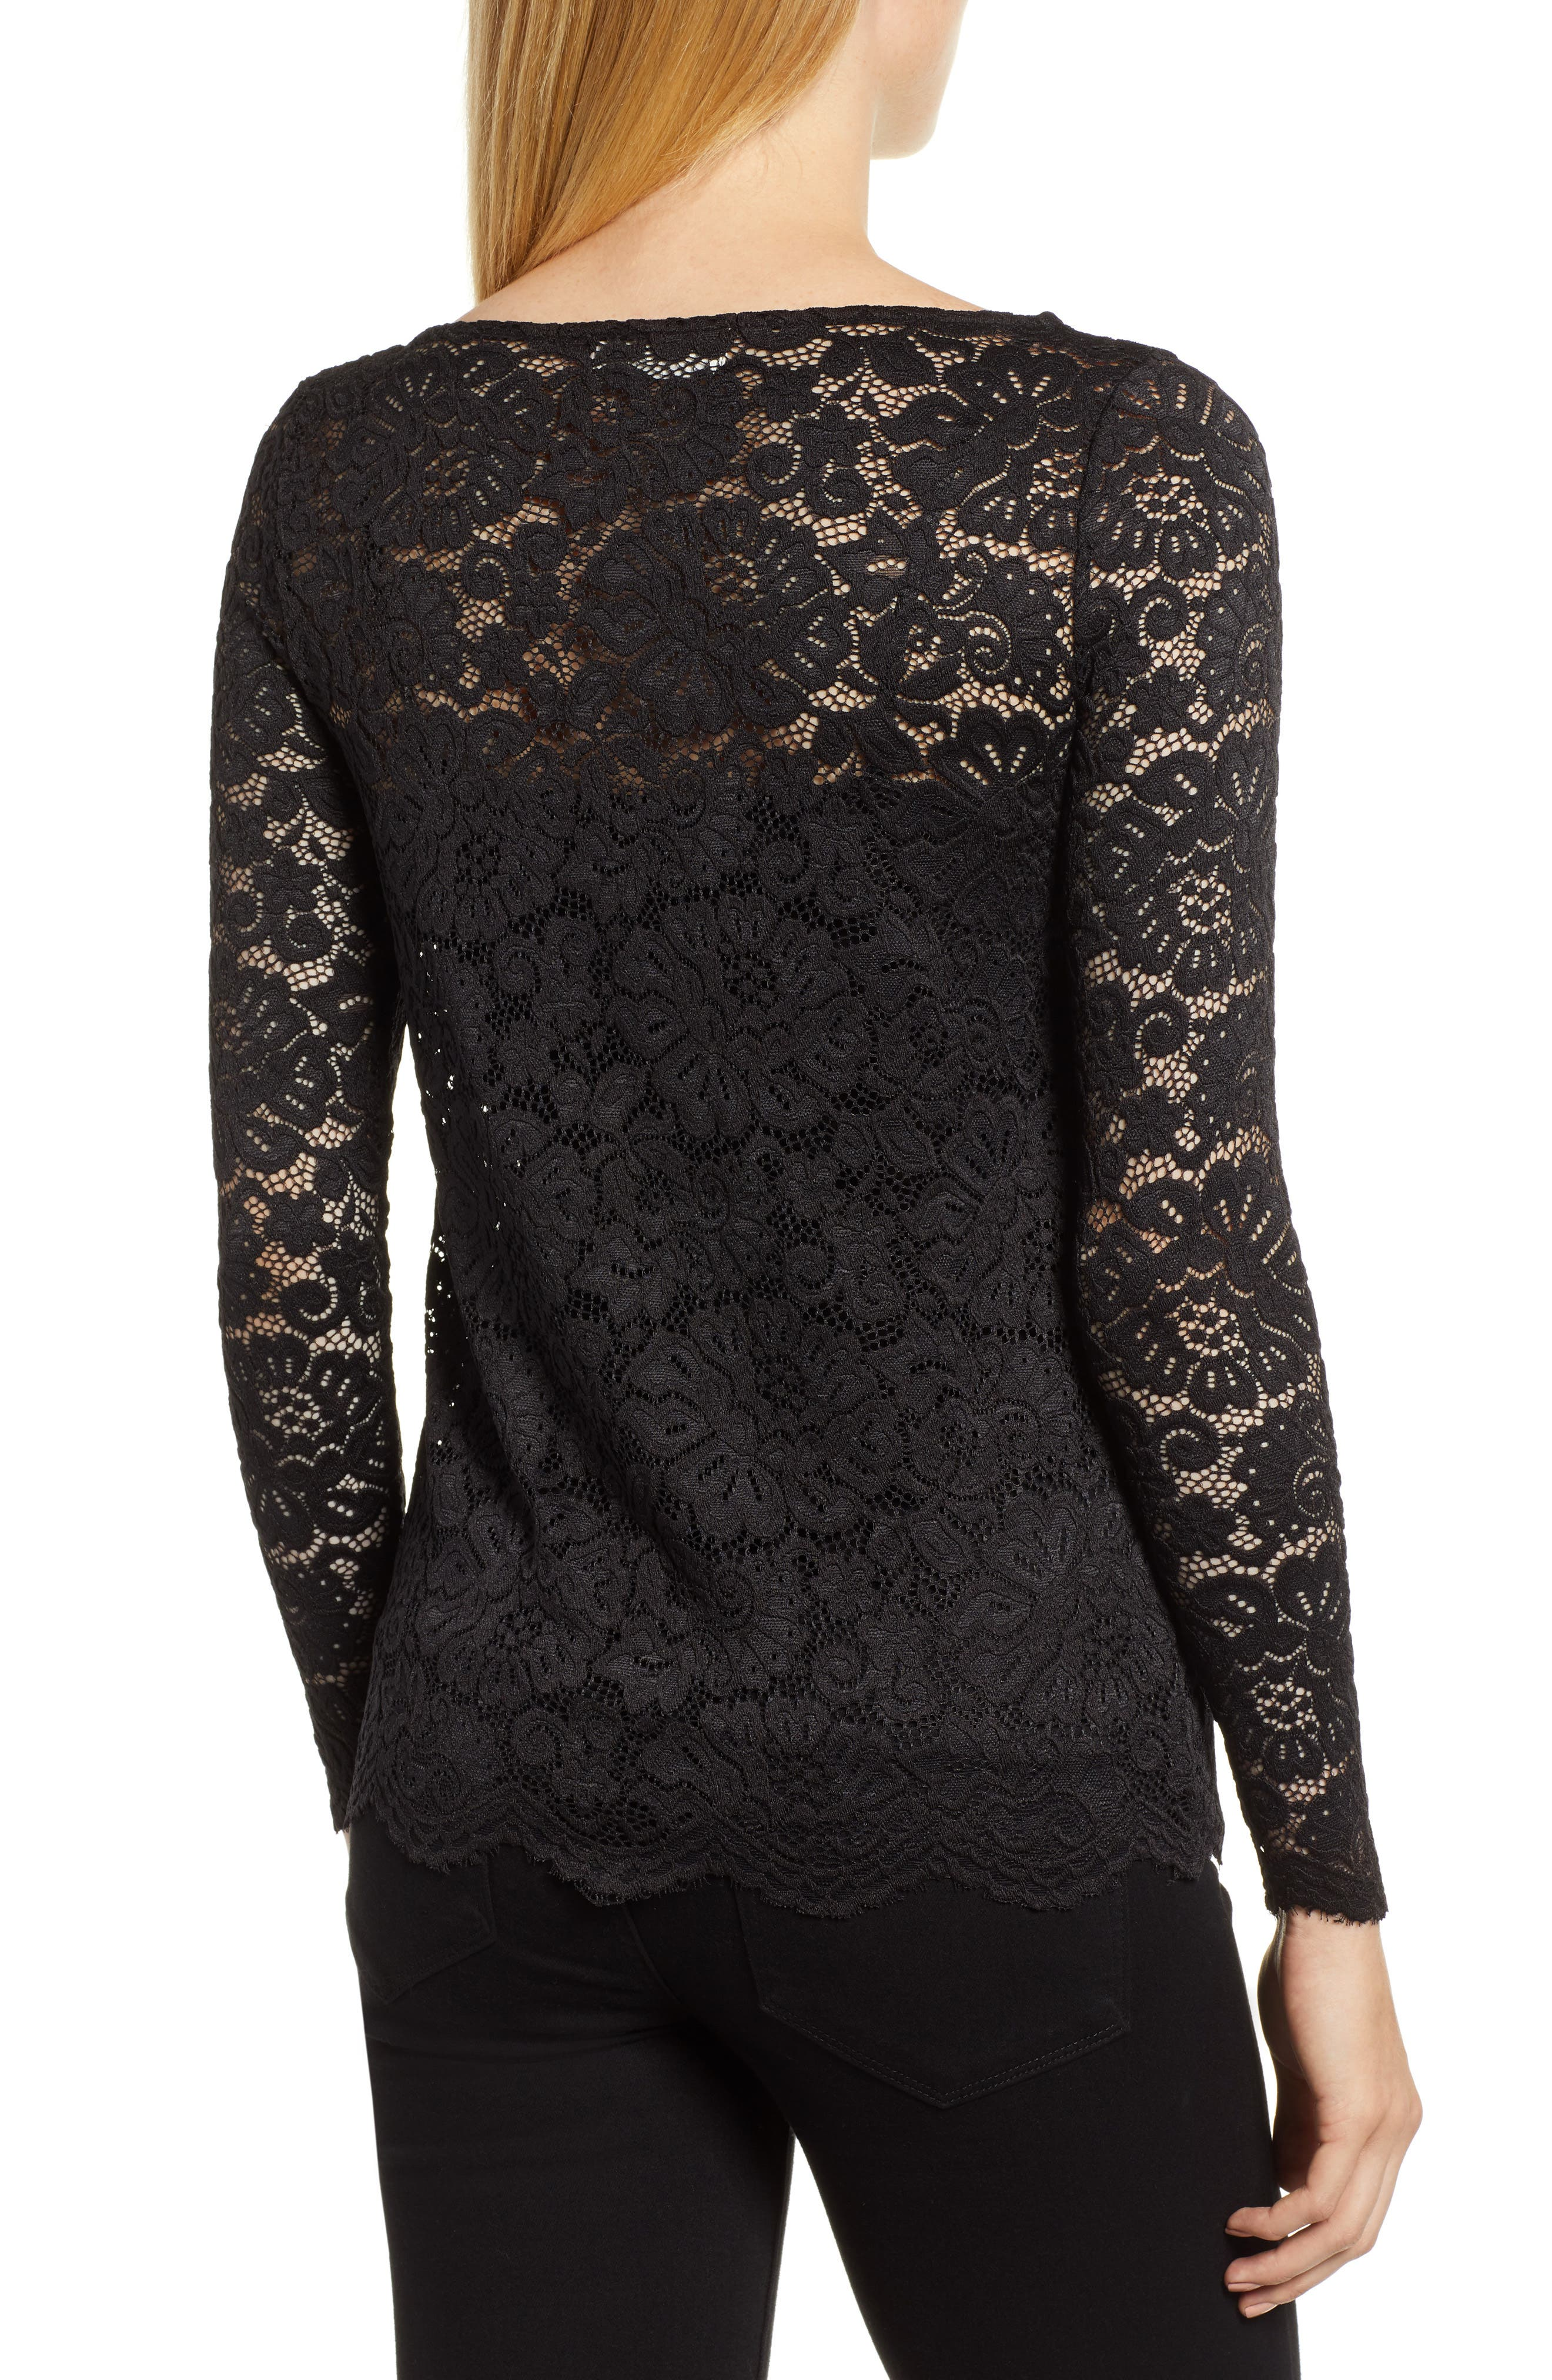 ROSEMUNDE, Filipa Lace Blouse, Alternate thumbnail 2, color, BLACK